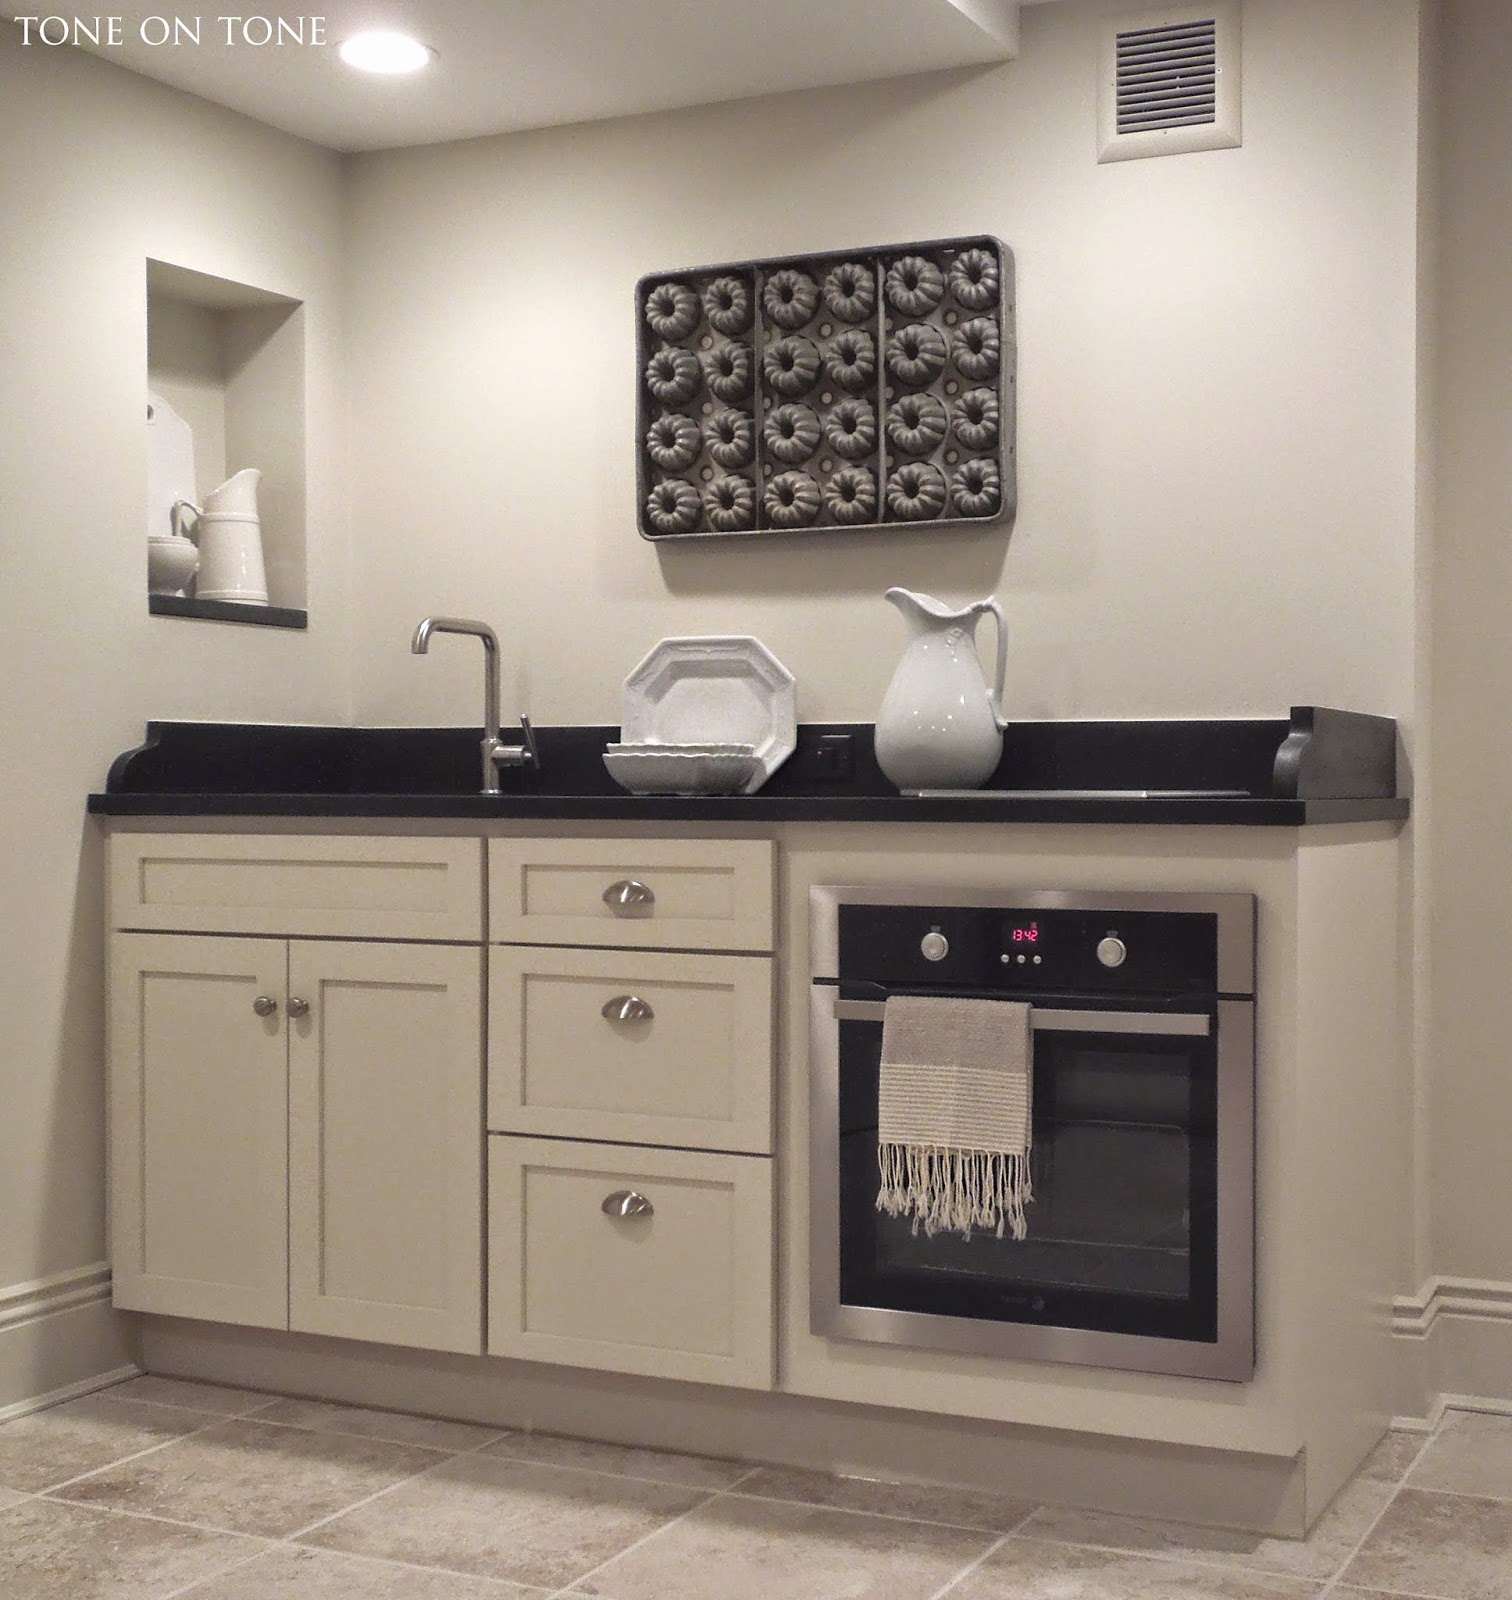 Awesome Apartment Size Appliances Images - Interior Design Ideas ...